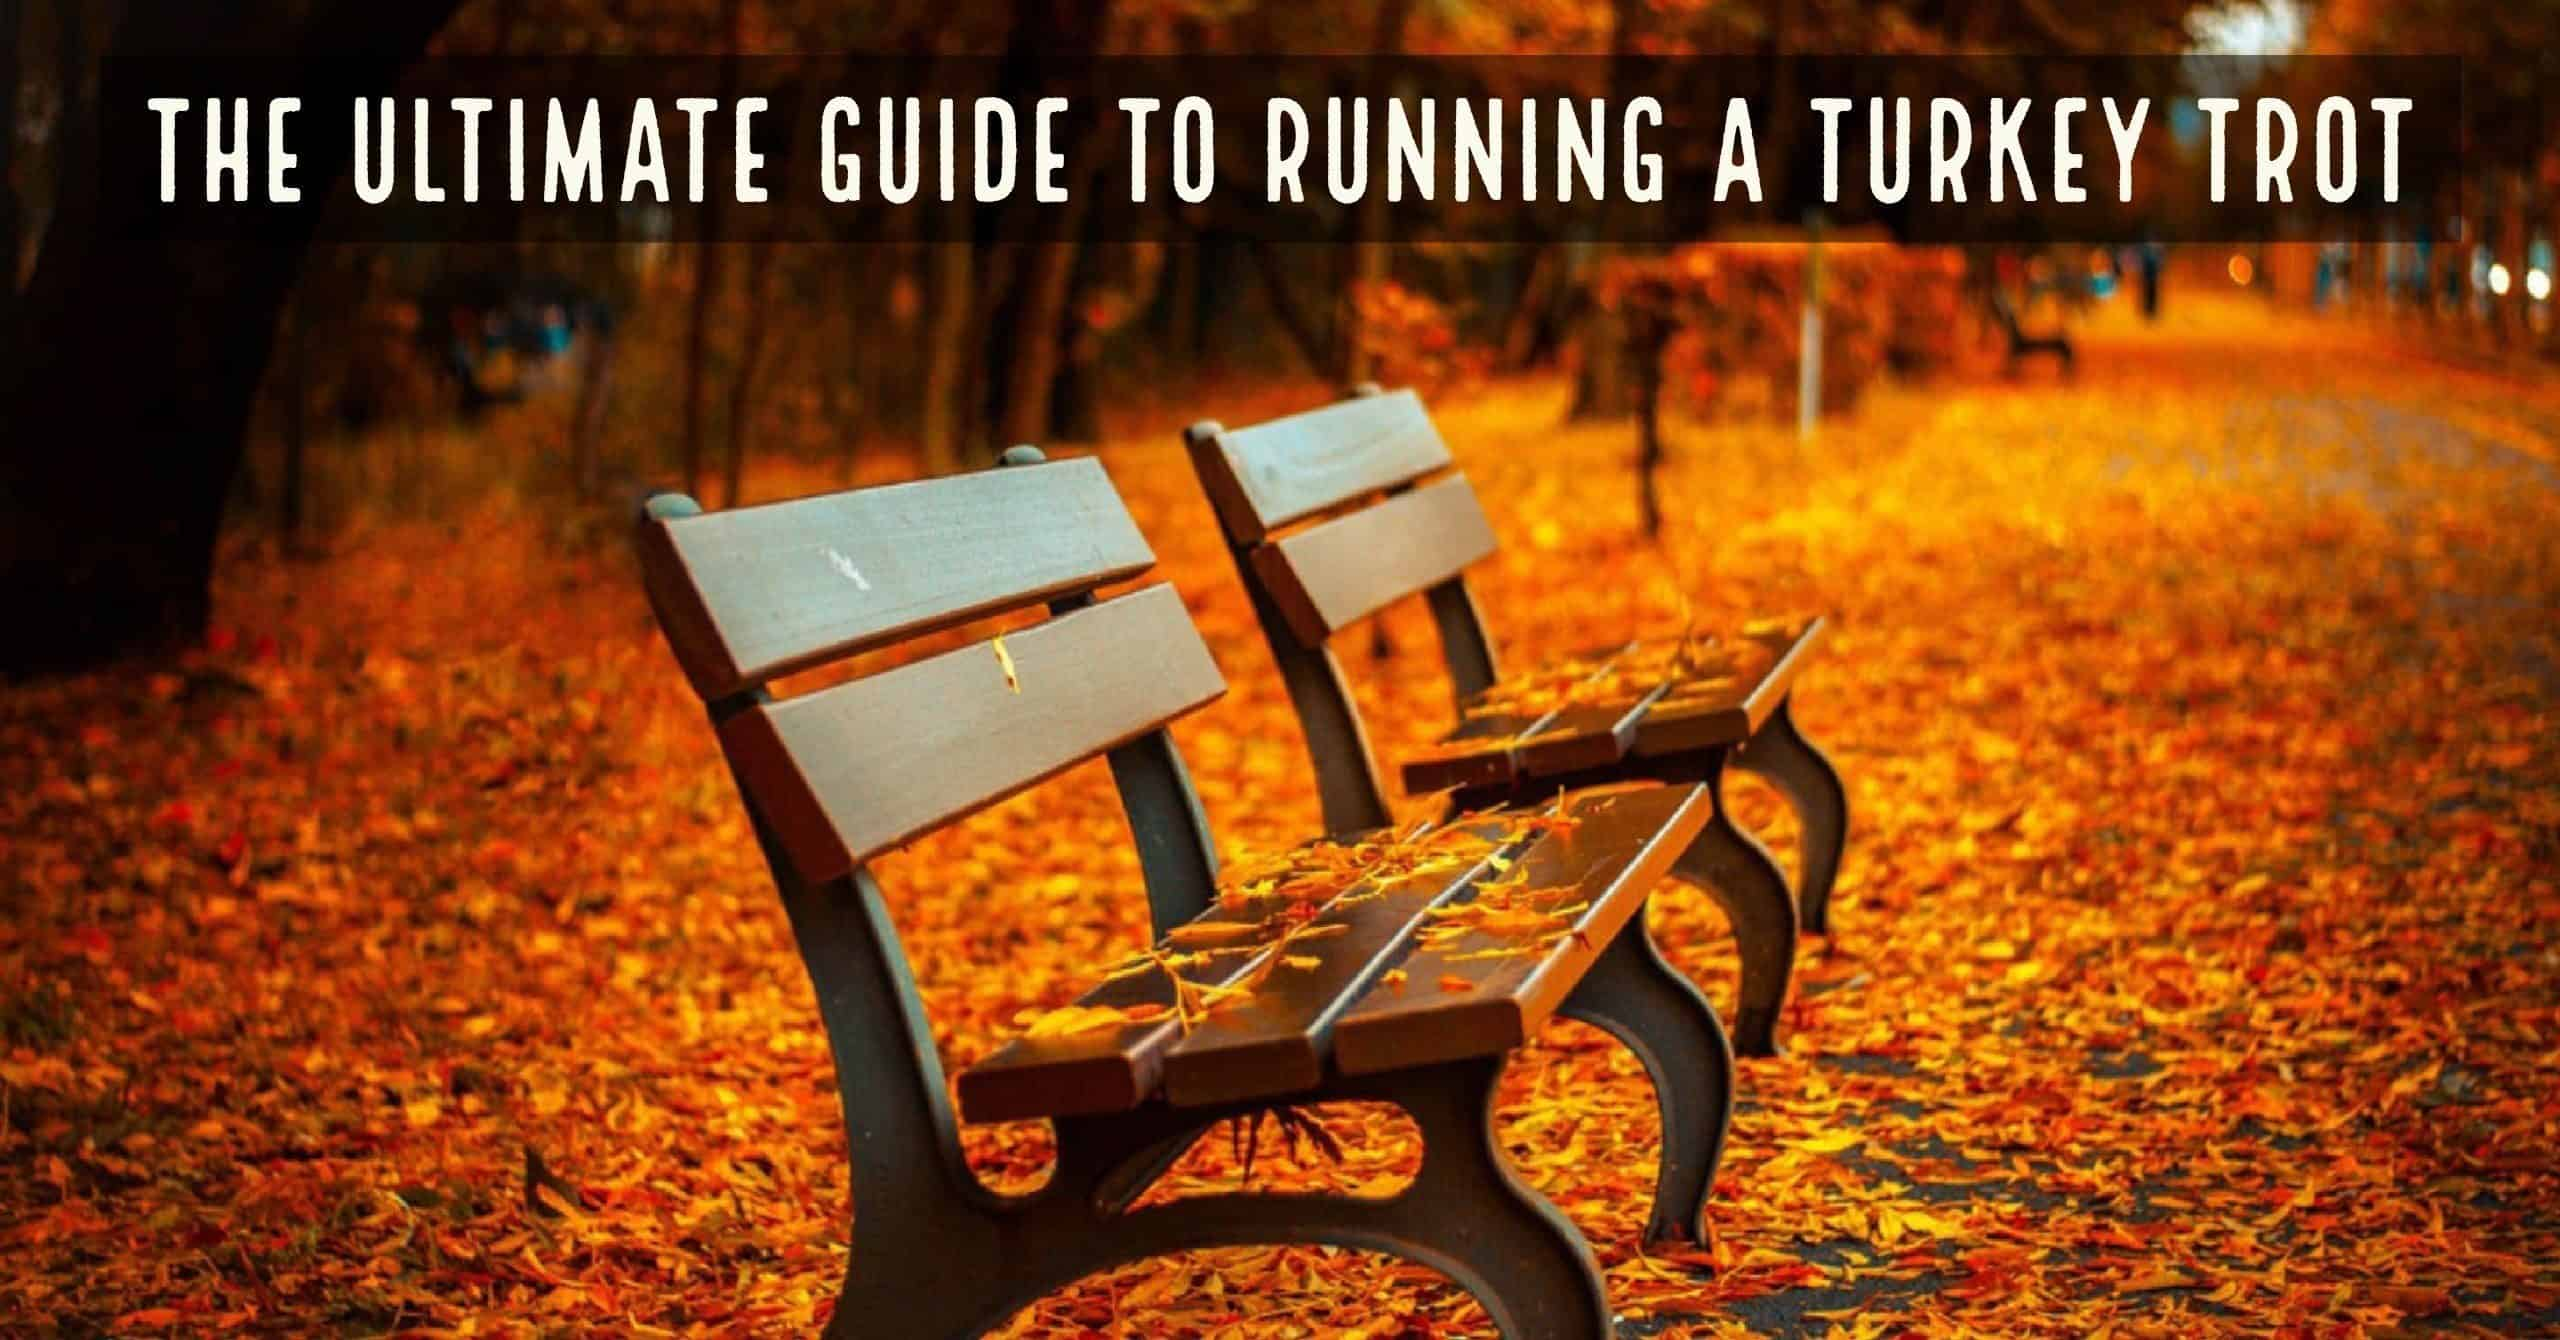 The Ultimate Guide to Running a Turkey Trot